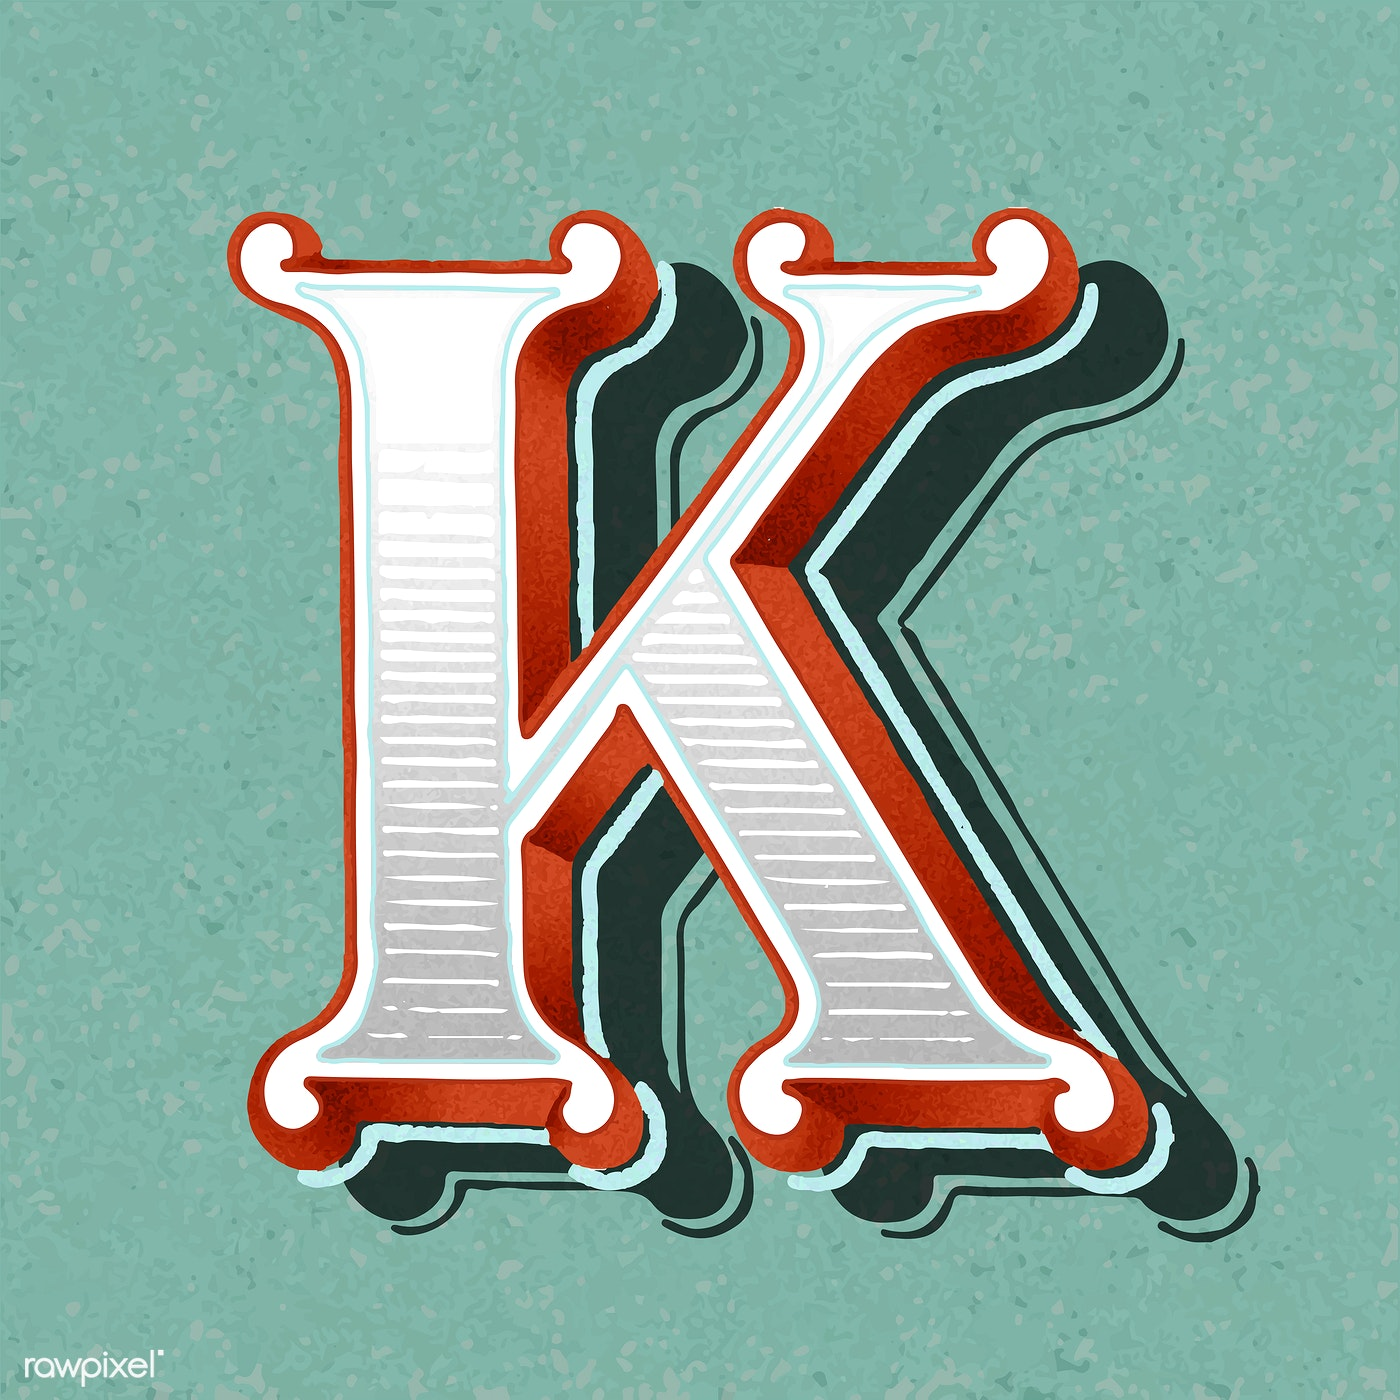 Capital Letter K Vintage Typography Style Free Stock